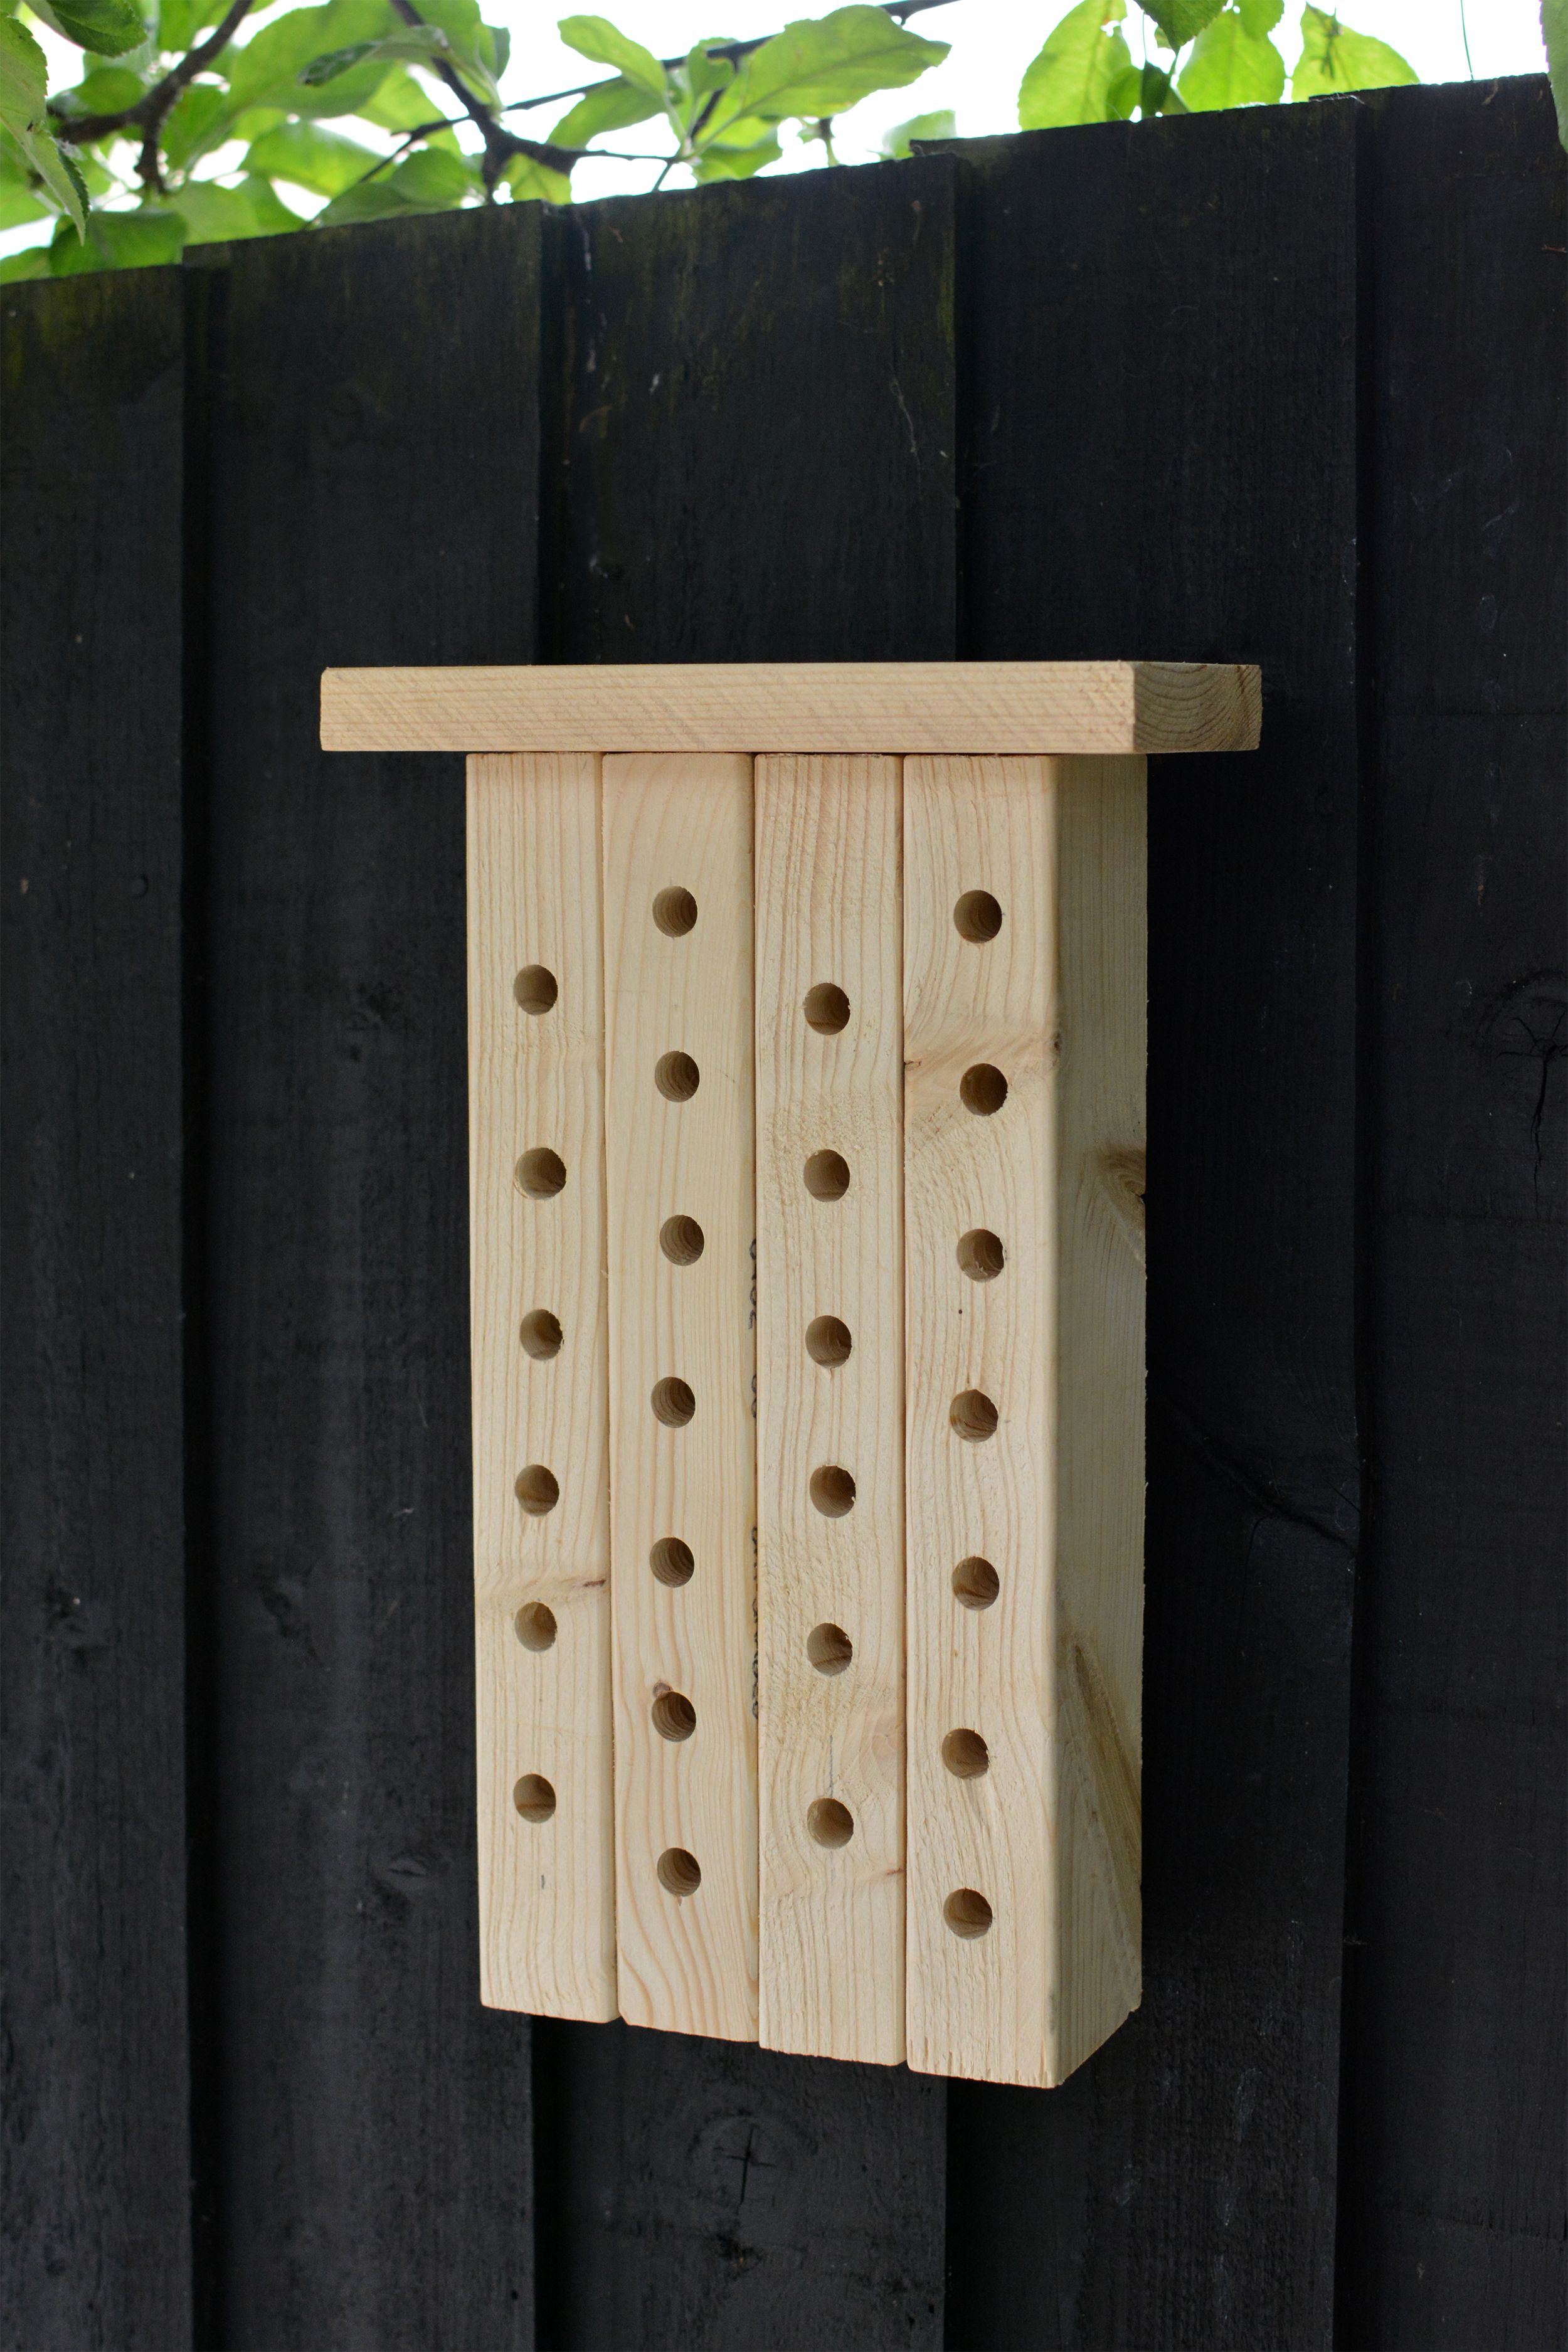 Attract solitary mason bees to your yard with a diy bee